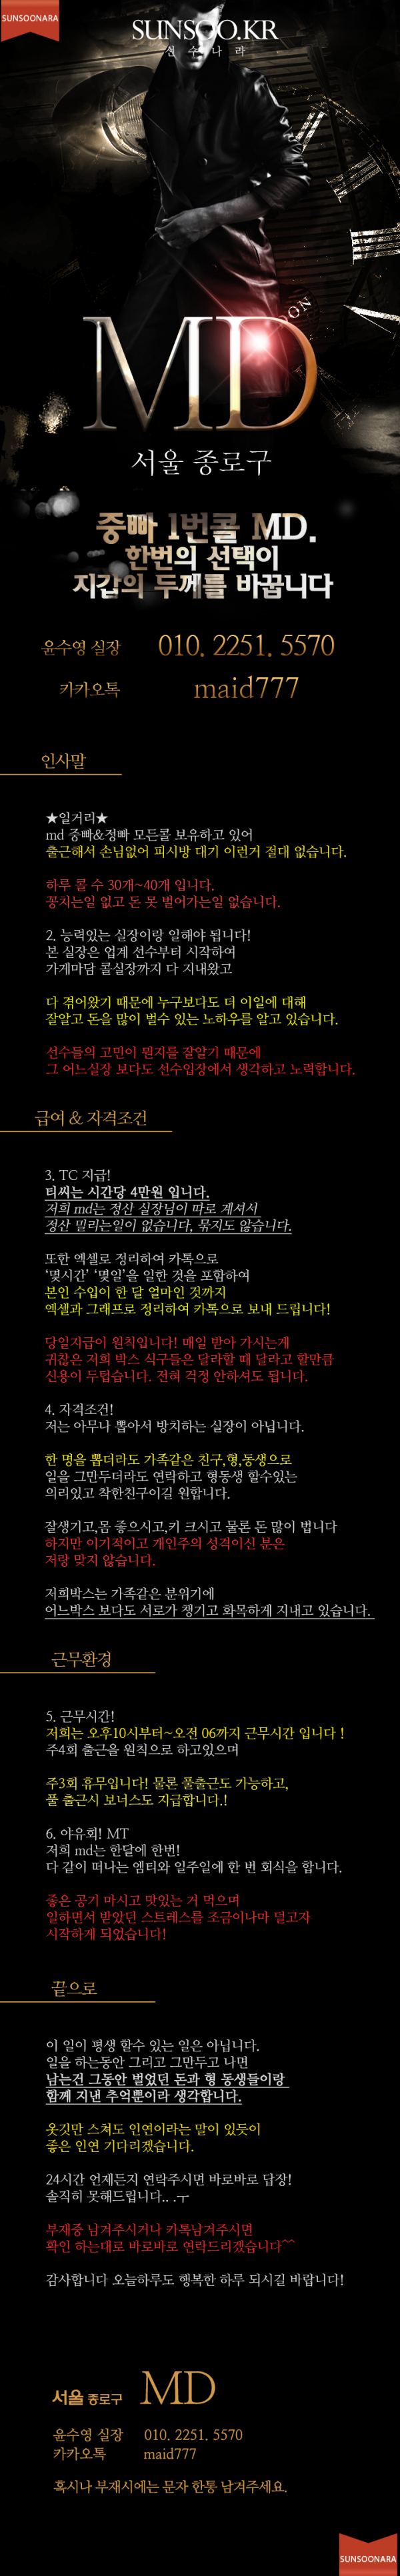 MD 이윤범.png